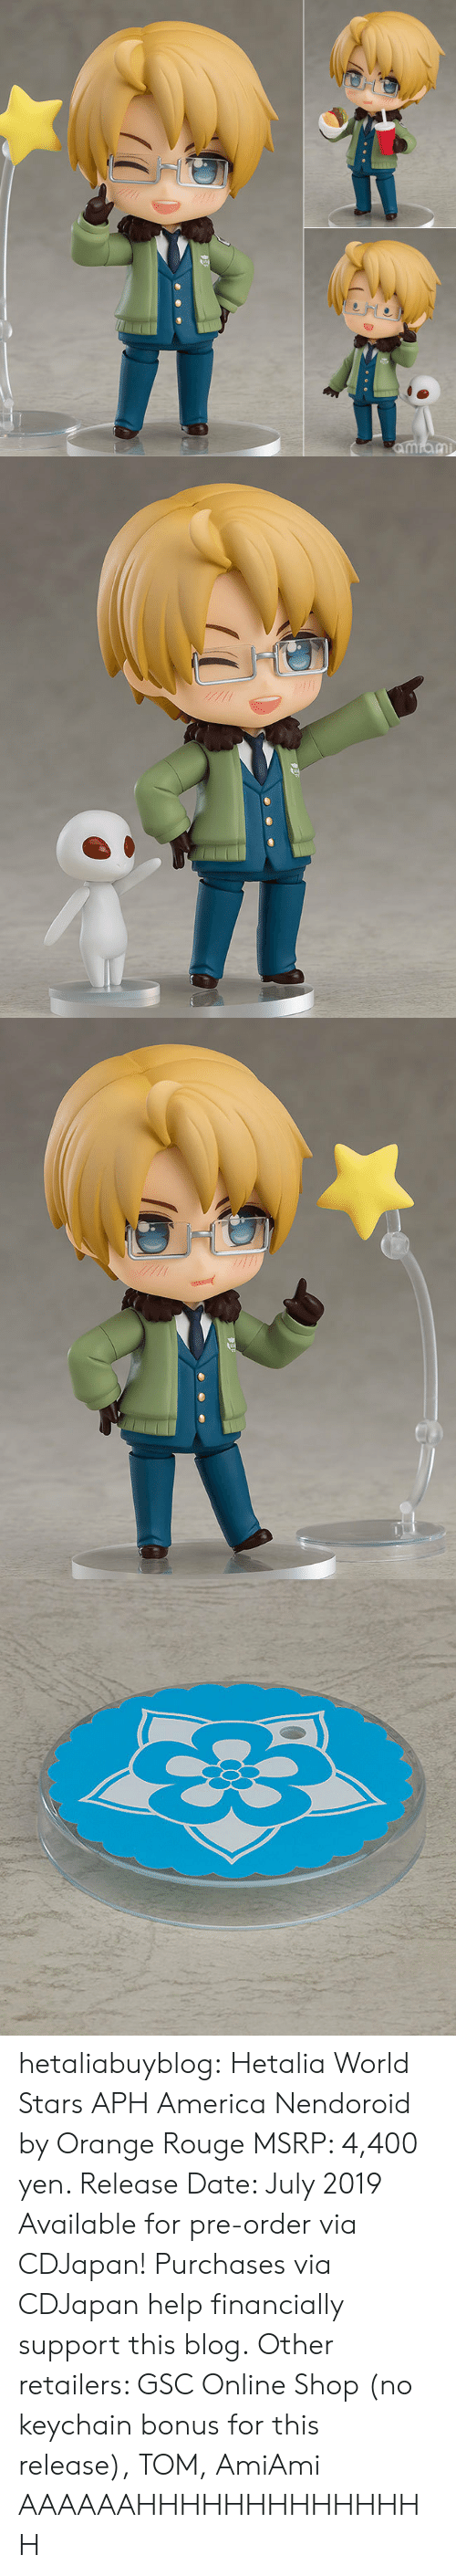 eng: 0  8 hetaliabuyblog: Hetalia World Stars APH America Nendoroid by Orange Rouge MSRP: 4,400 yen. Release Date: July 2019 Available for pre-order via CDJapan! Purchases via CDJapan help financially support this blog. Other retailers: GSC Online Shop (no keychain bonus for this release), TOM, AmiAmi   AAAAAAHHHHHHHHHHHHHH